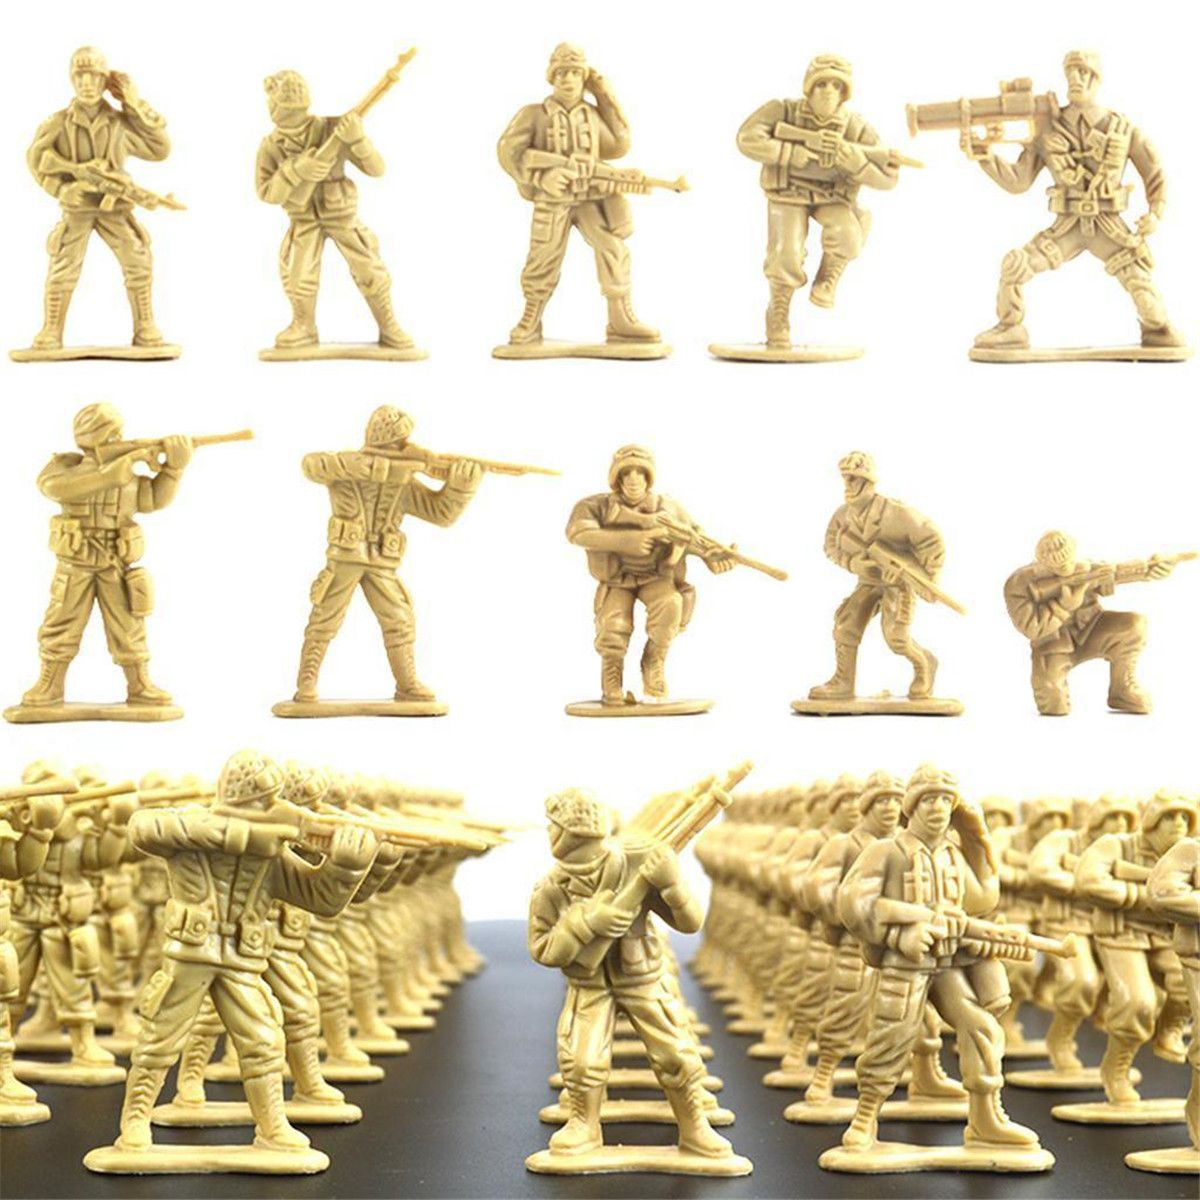 100Pcs/Set Plastic Military Toy Soldiers Model Toys Kit Army Men Figures Action Toy Figures Accessories Children Gifts